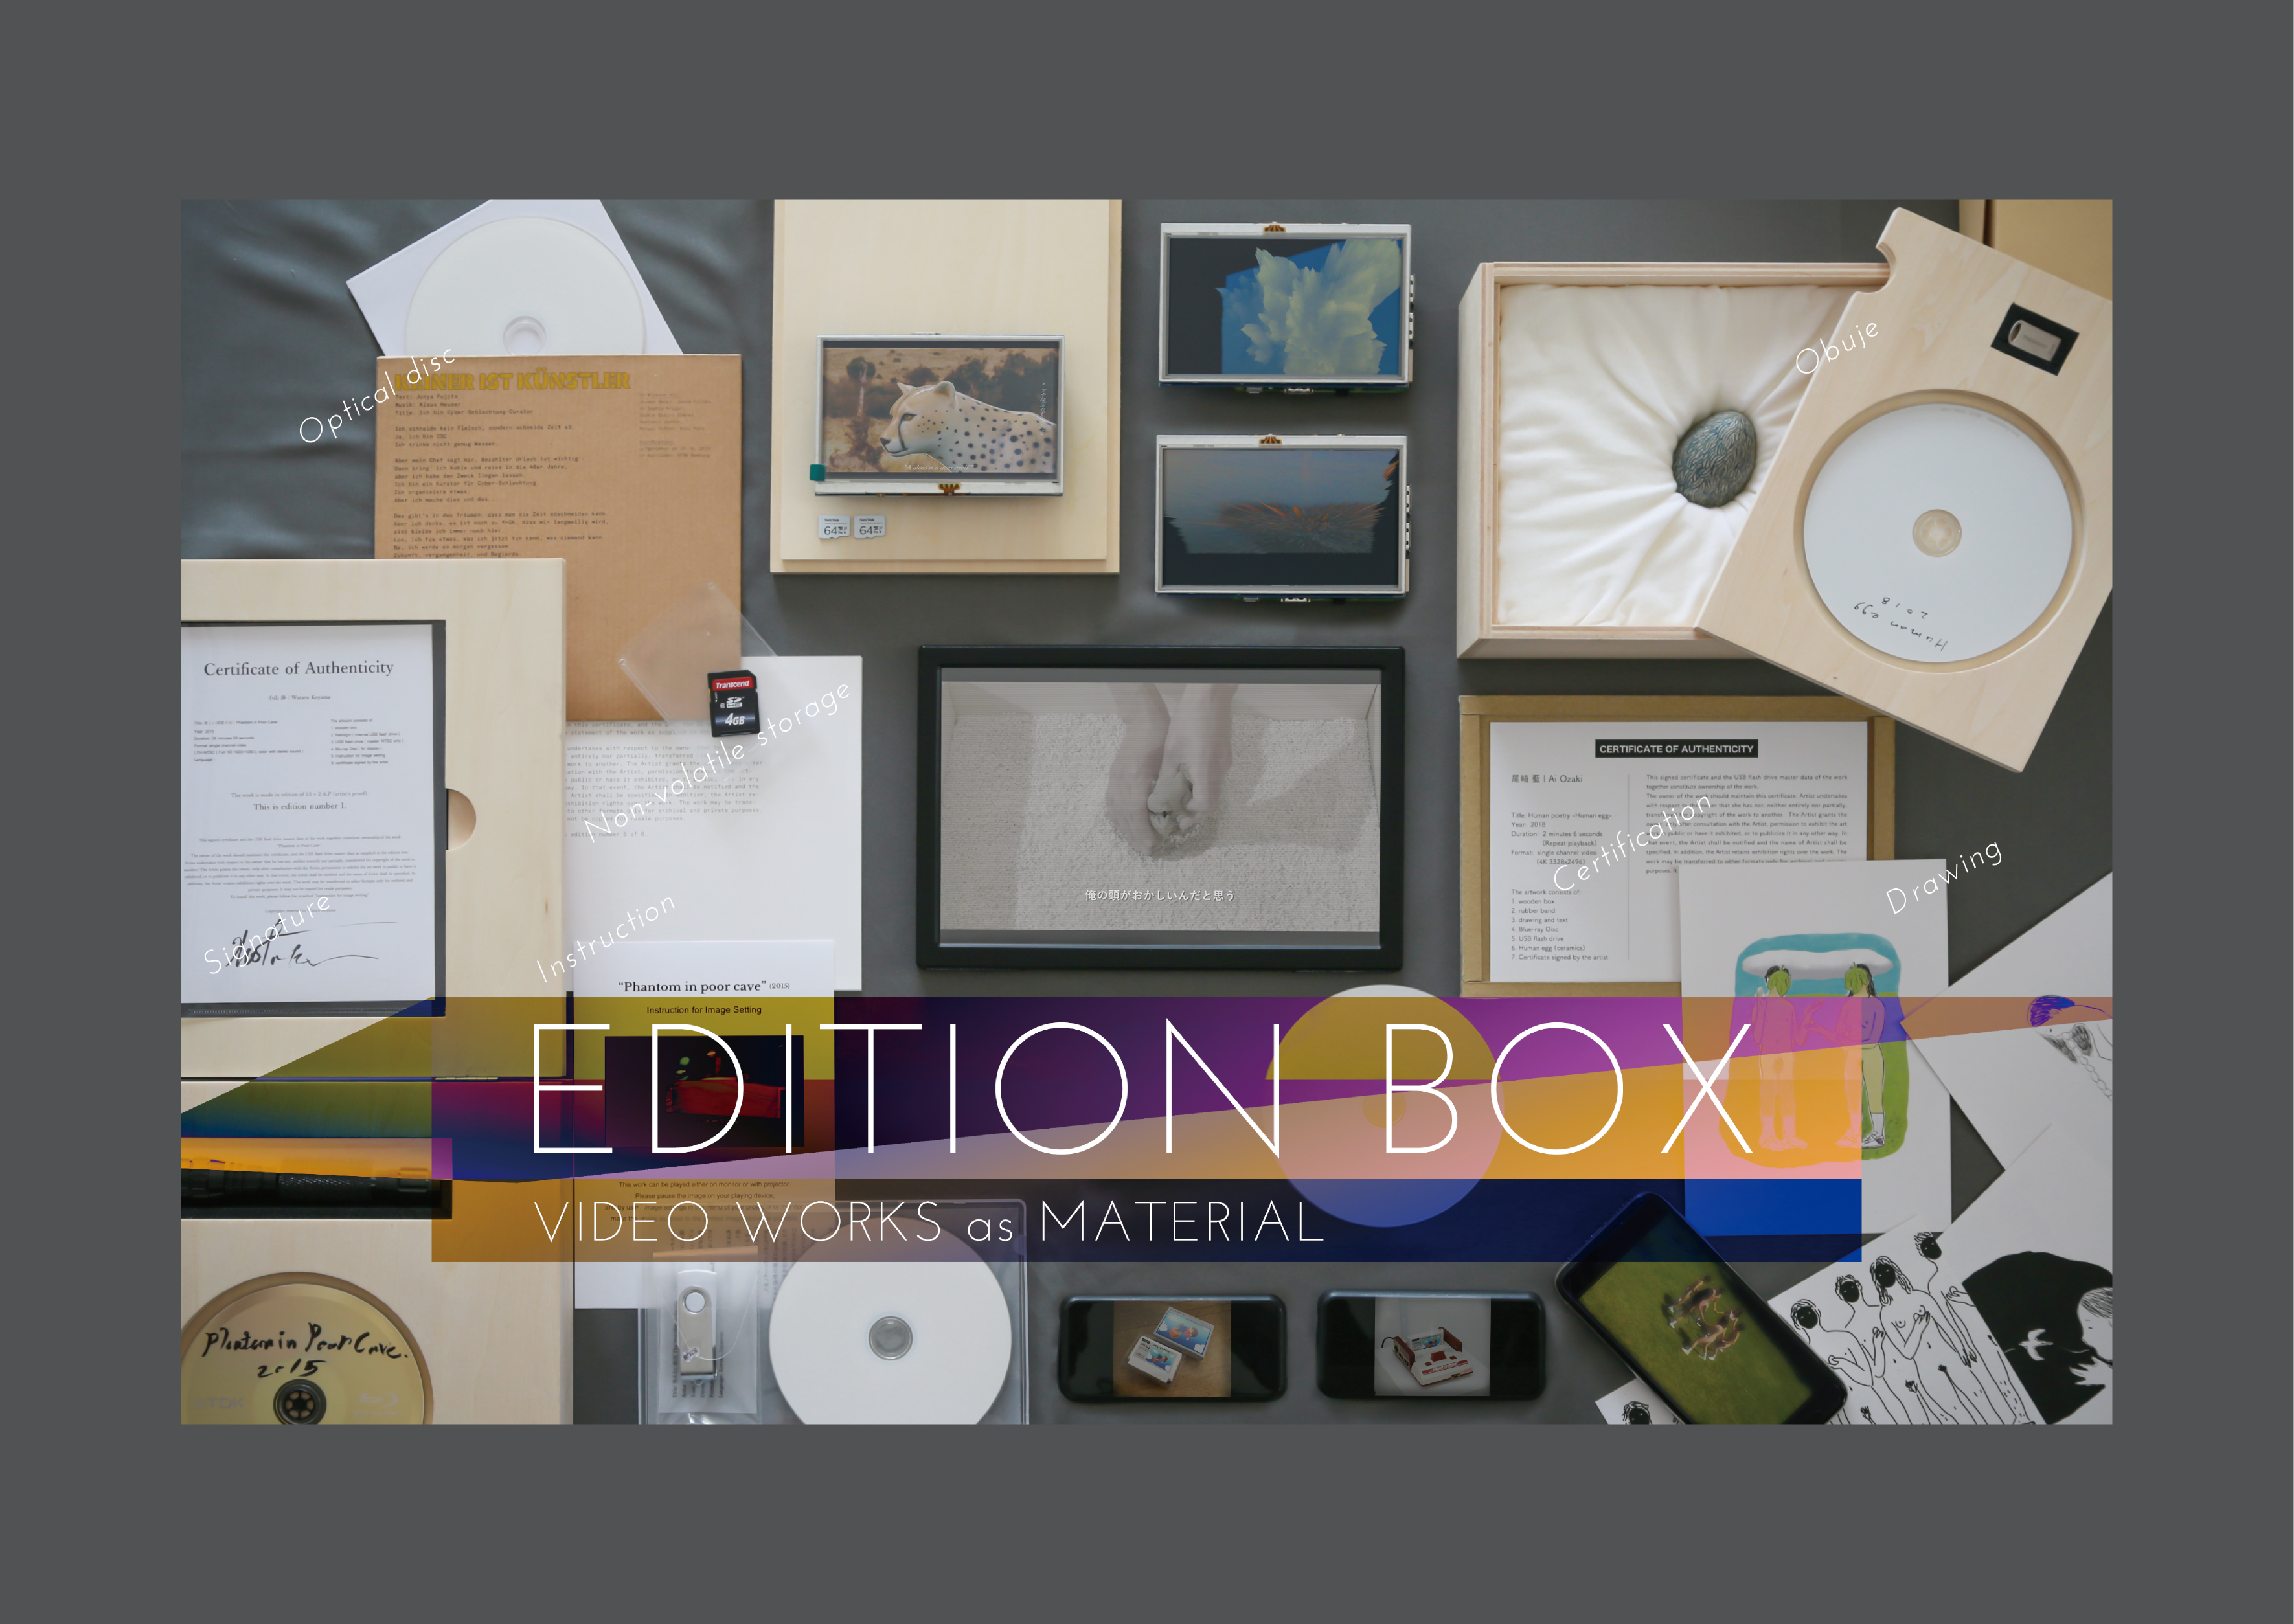 Edition box -Video Works as Material